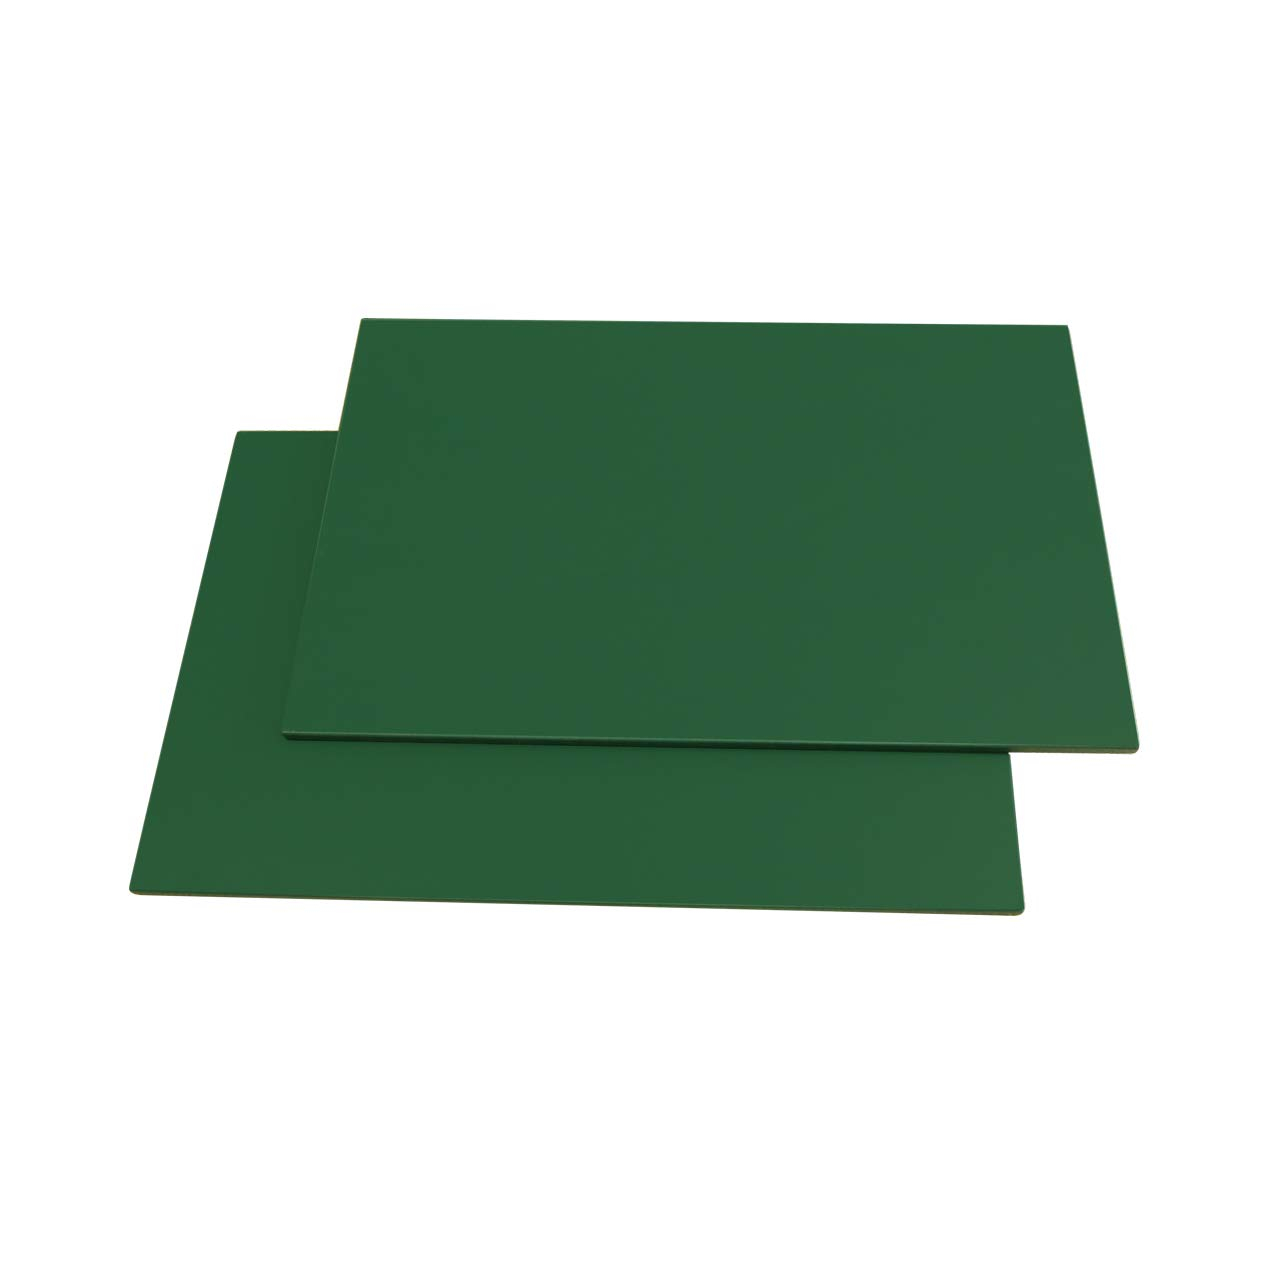 MONTESSORI OUTLET Blank Green Boards (2 pcs) by MONTESSORI OUTLET